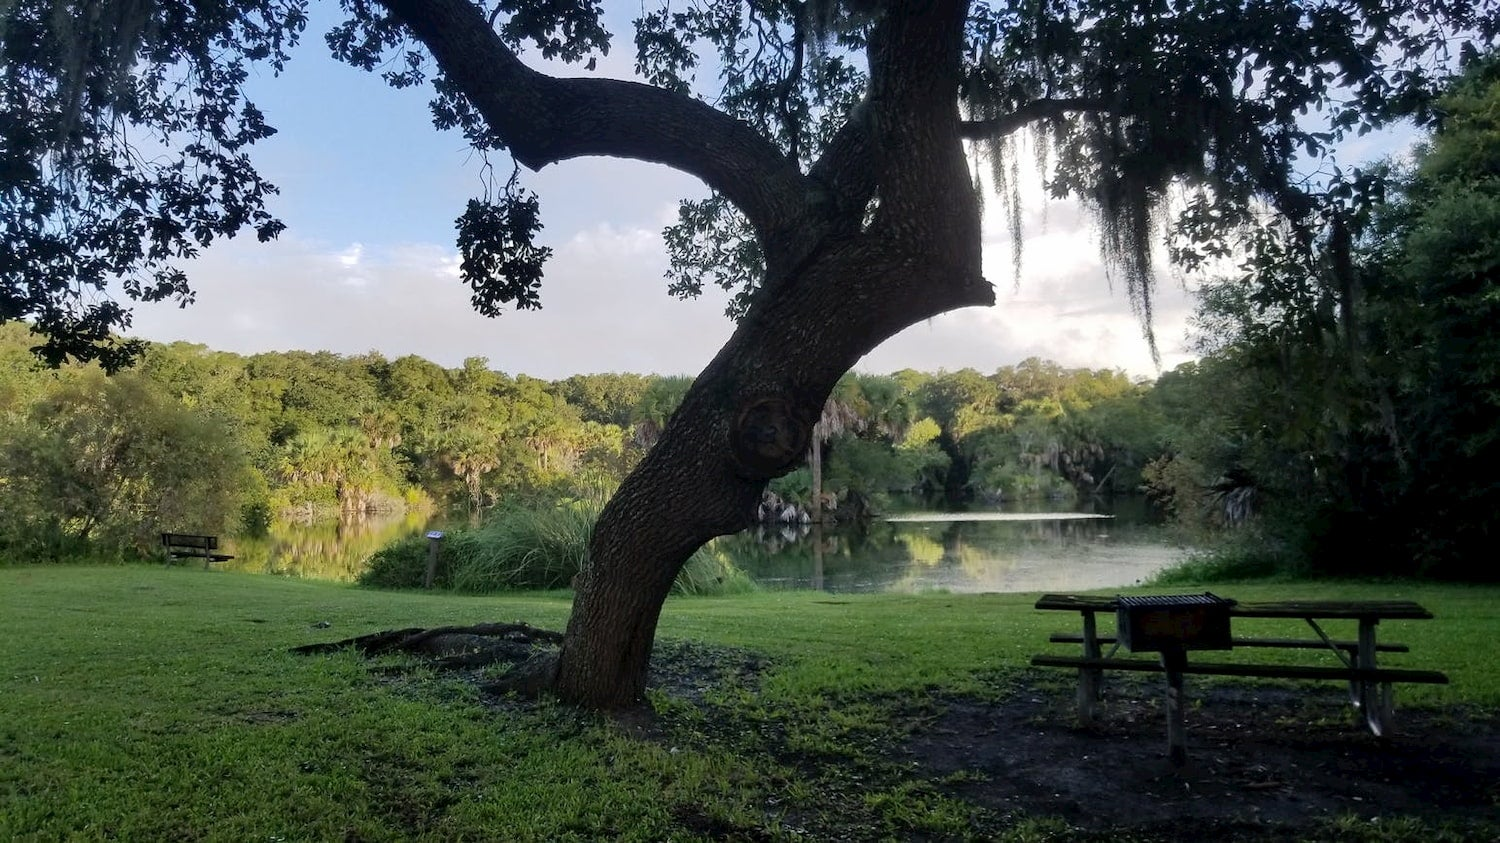 tree over picnic bench near body of water